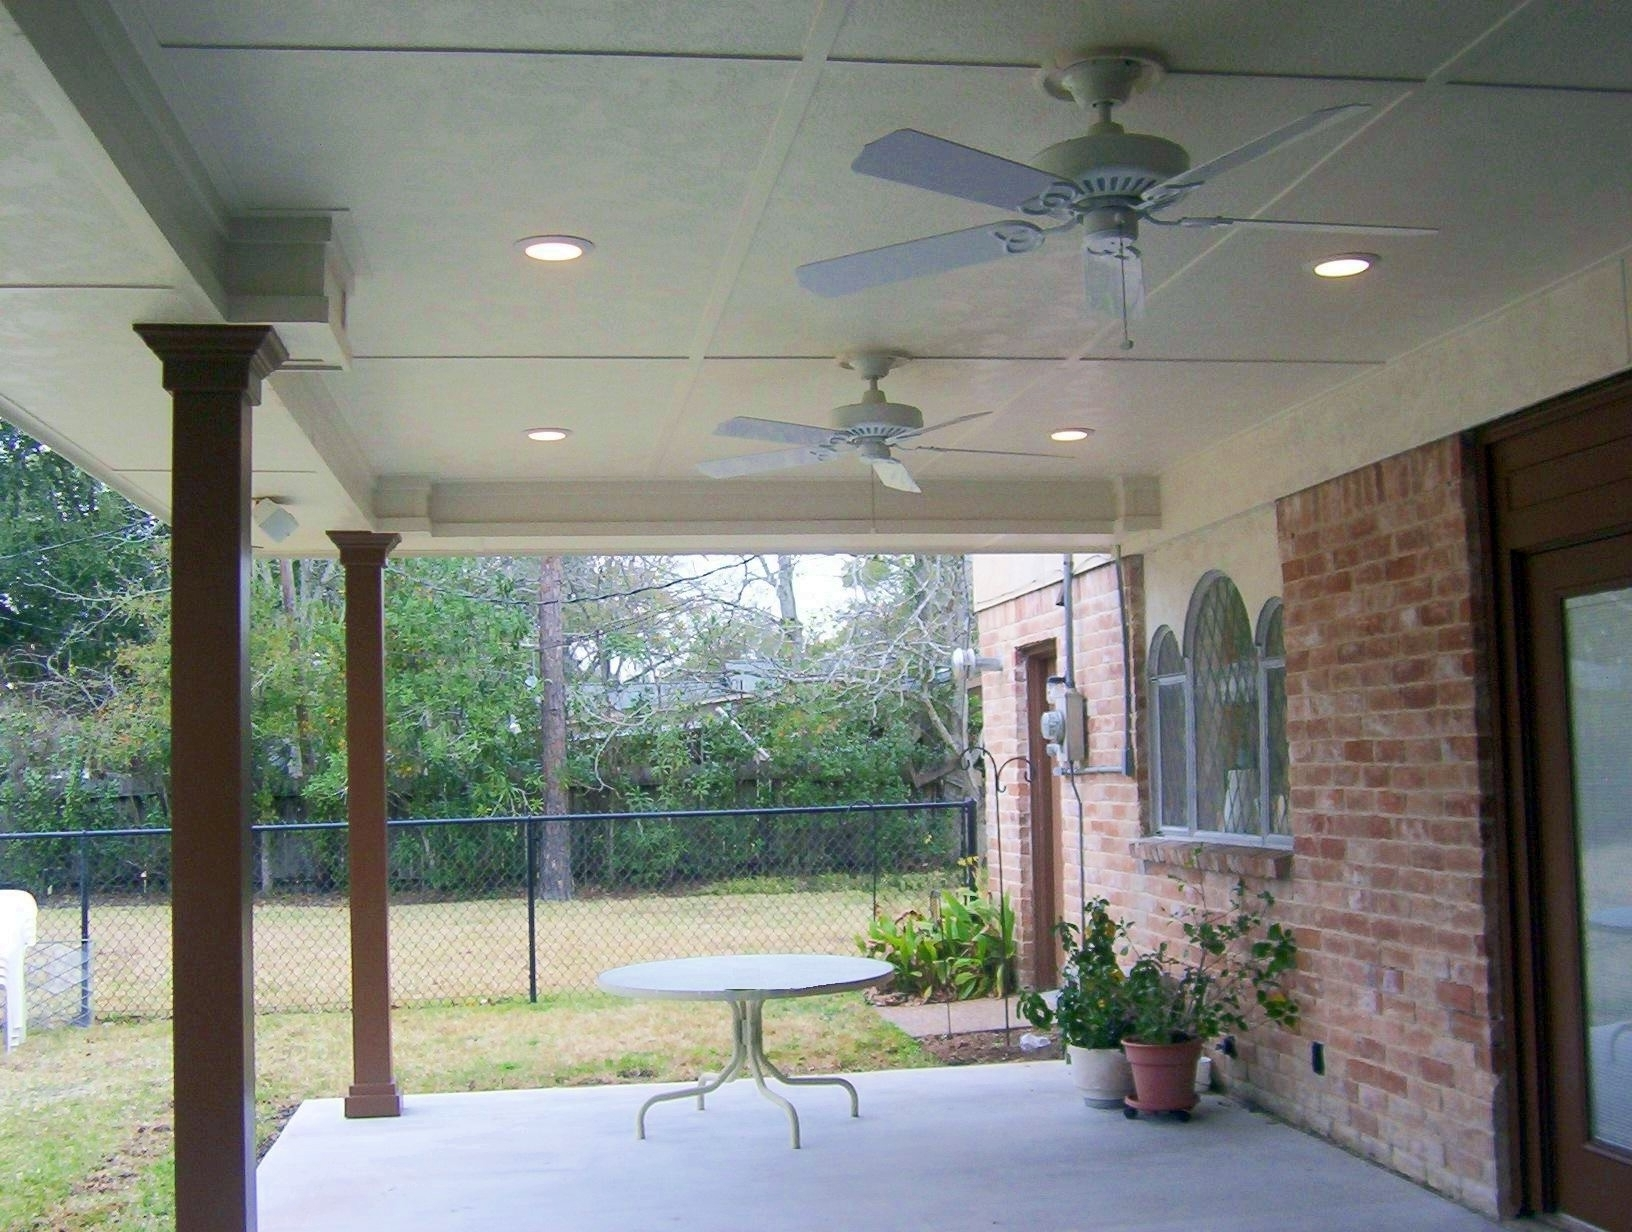 Fabulous Outdoor Patio Ceiling Fans Cool Outdoor Ceiling Fans Patio For Latest Outdoor Porch Ceiling Fans With Lights (View 2 of 20)